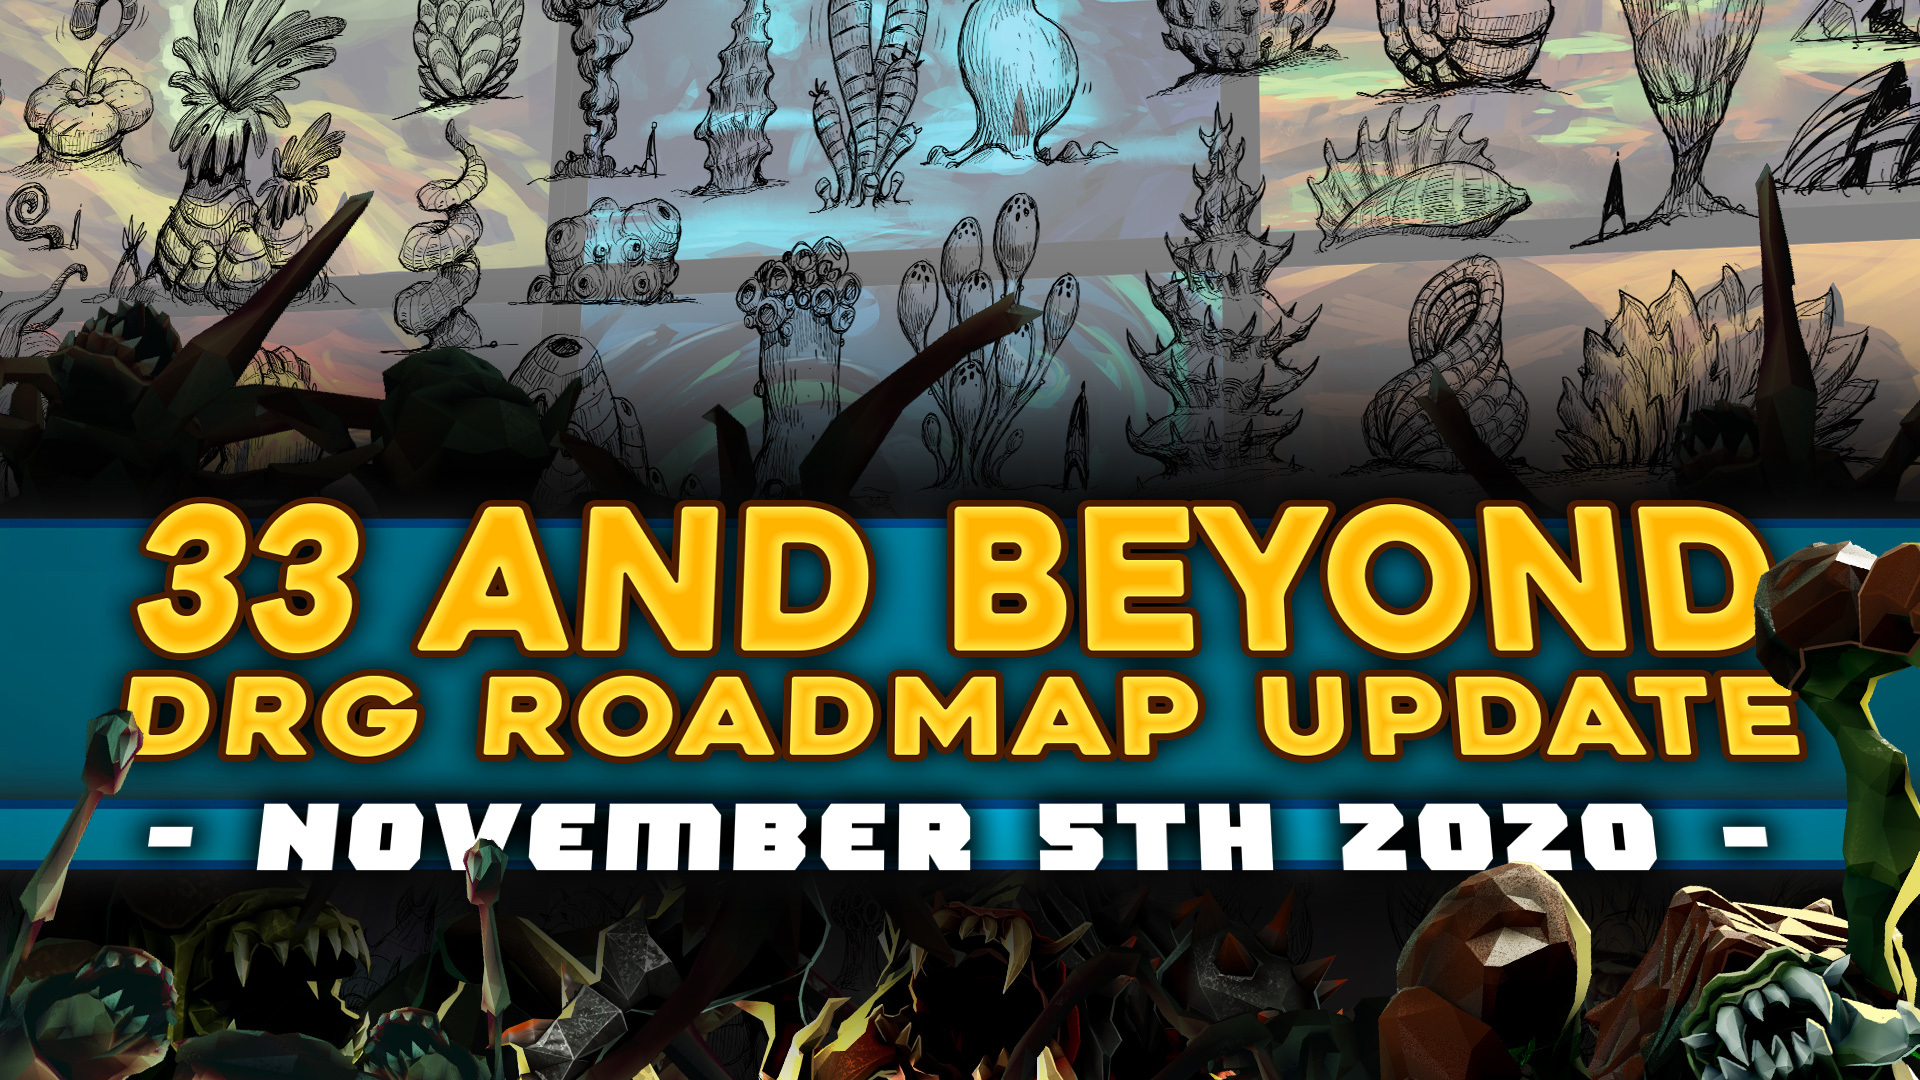 ROADMAP UPDATE